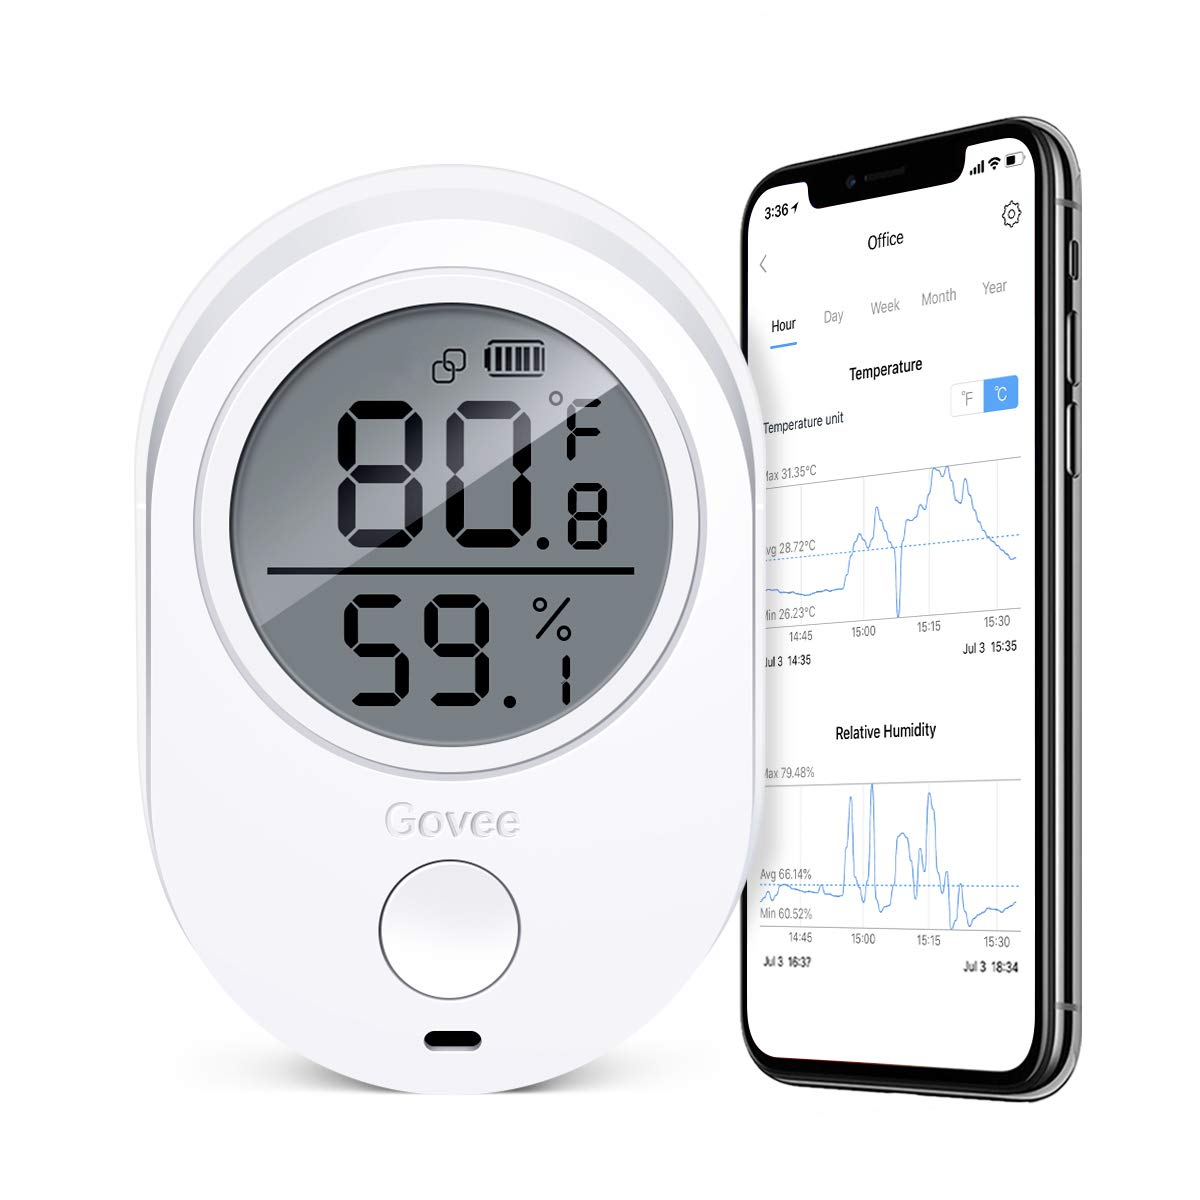 Govee Temperature Humidity Monitor, Indoor Wireless Thermometer Hygrometer Gauge, Bluetooth Temp Humidity Sensor with Alert, Data Export for Home Room House Garage Cigar Humidor Wine Cellar Greenhouse by Govee